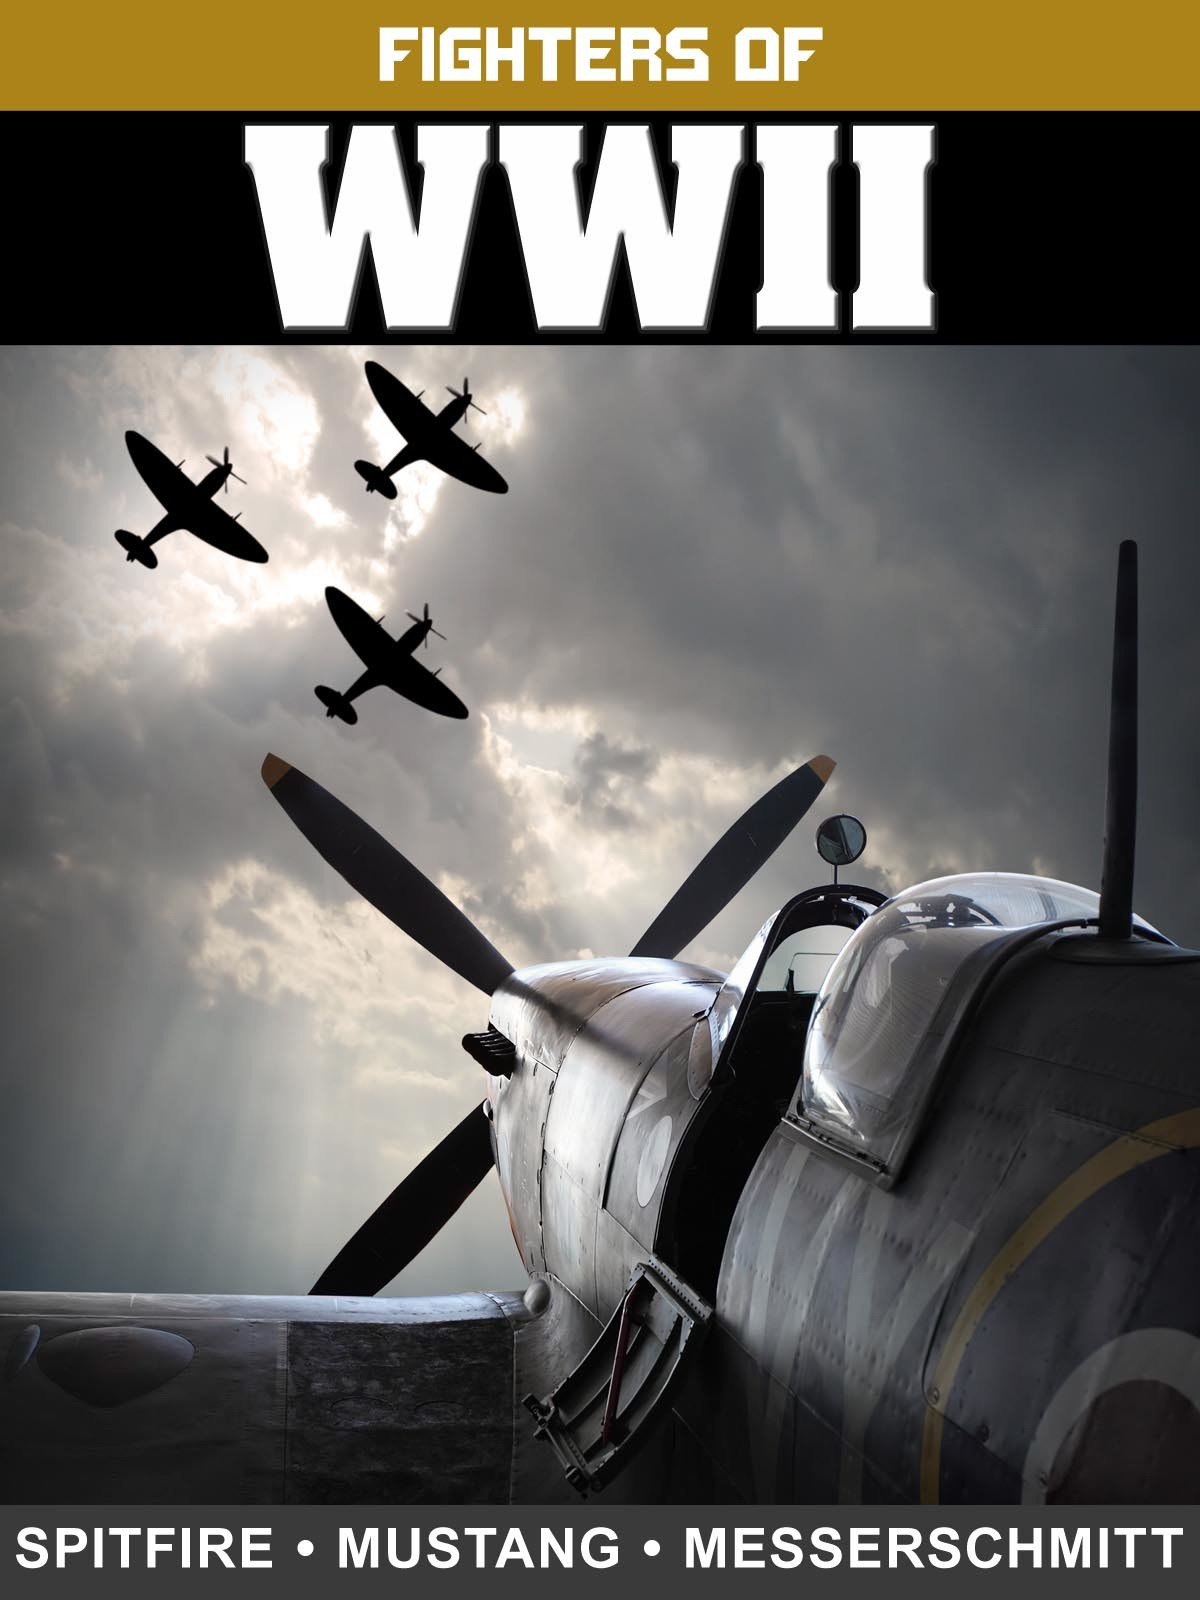 Fighters of WWII: Spitfire, Mustang, and Messerschmidt